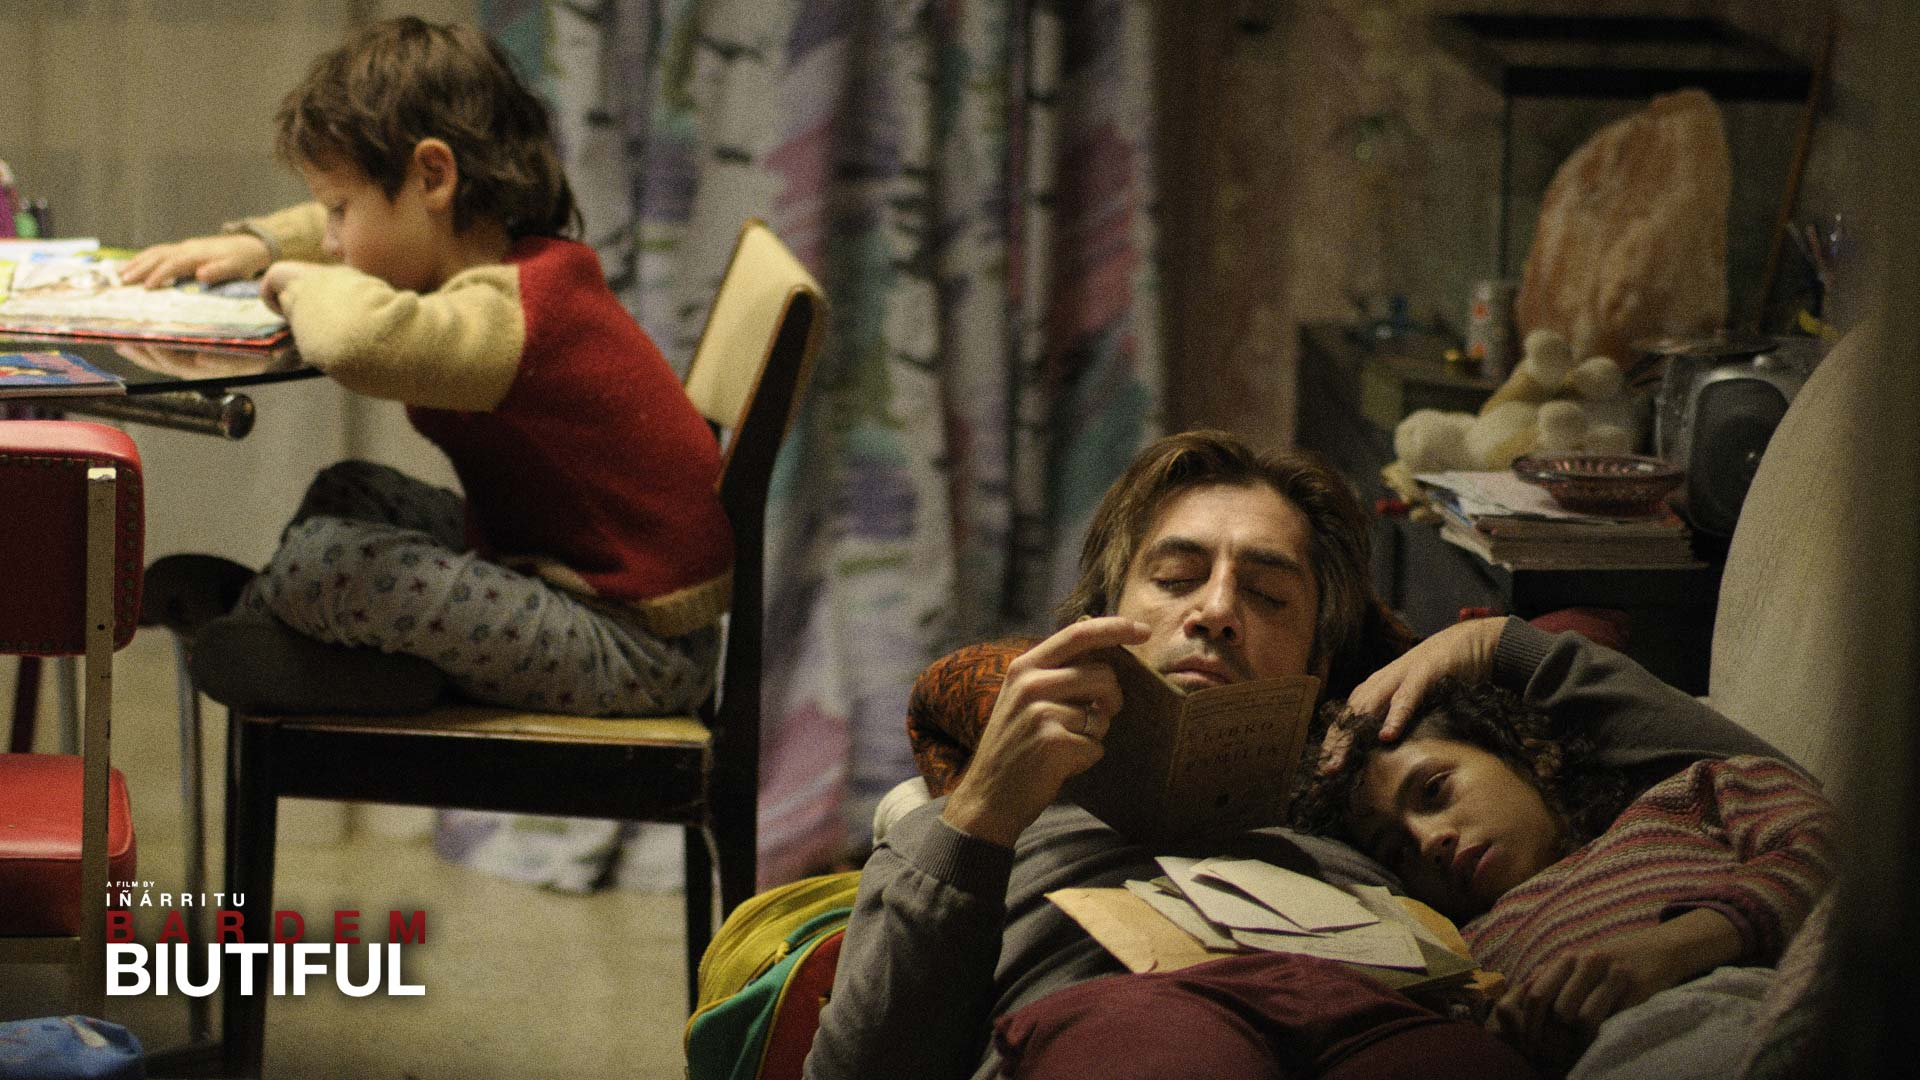 Javier Bardem keeps close to his children in the movie Biutiful, played by young actors Hanaa Bouchaib and Guillermo Estrella, in this wallpaper image